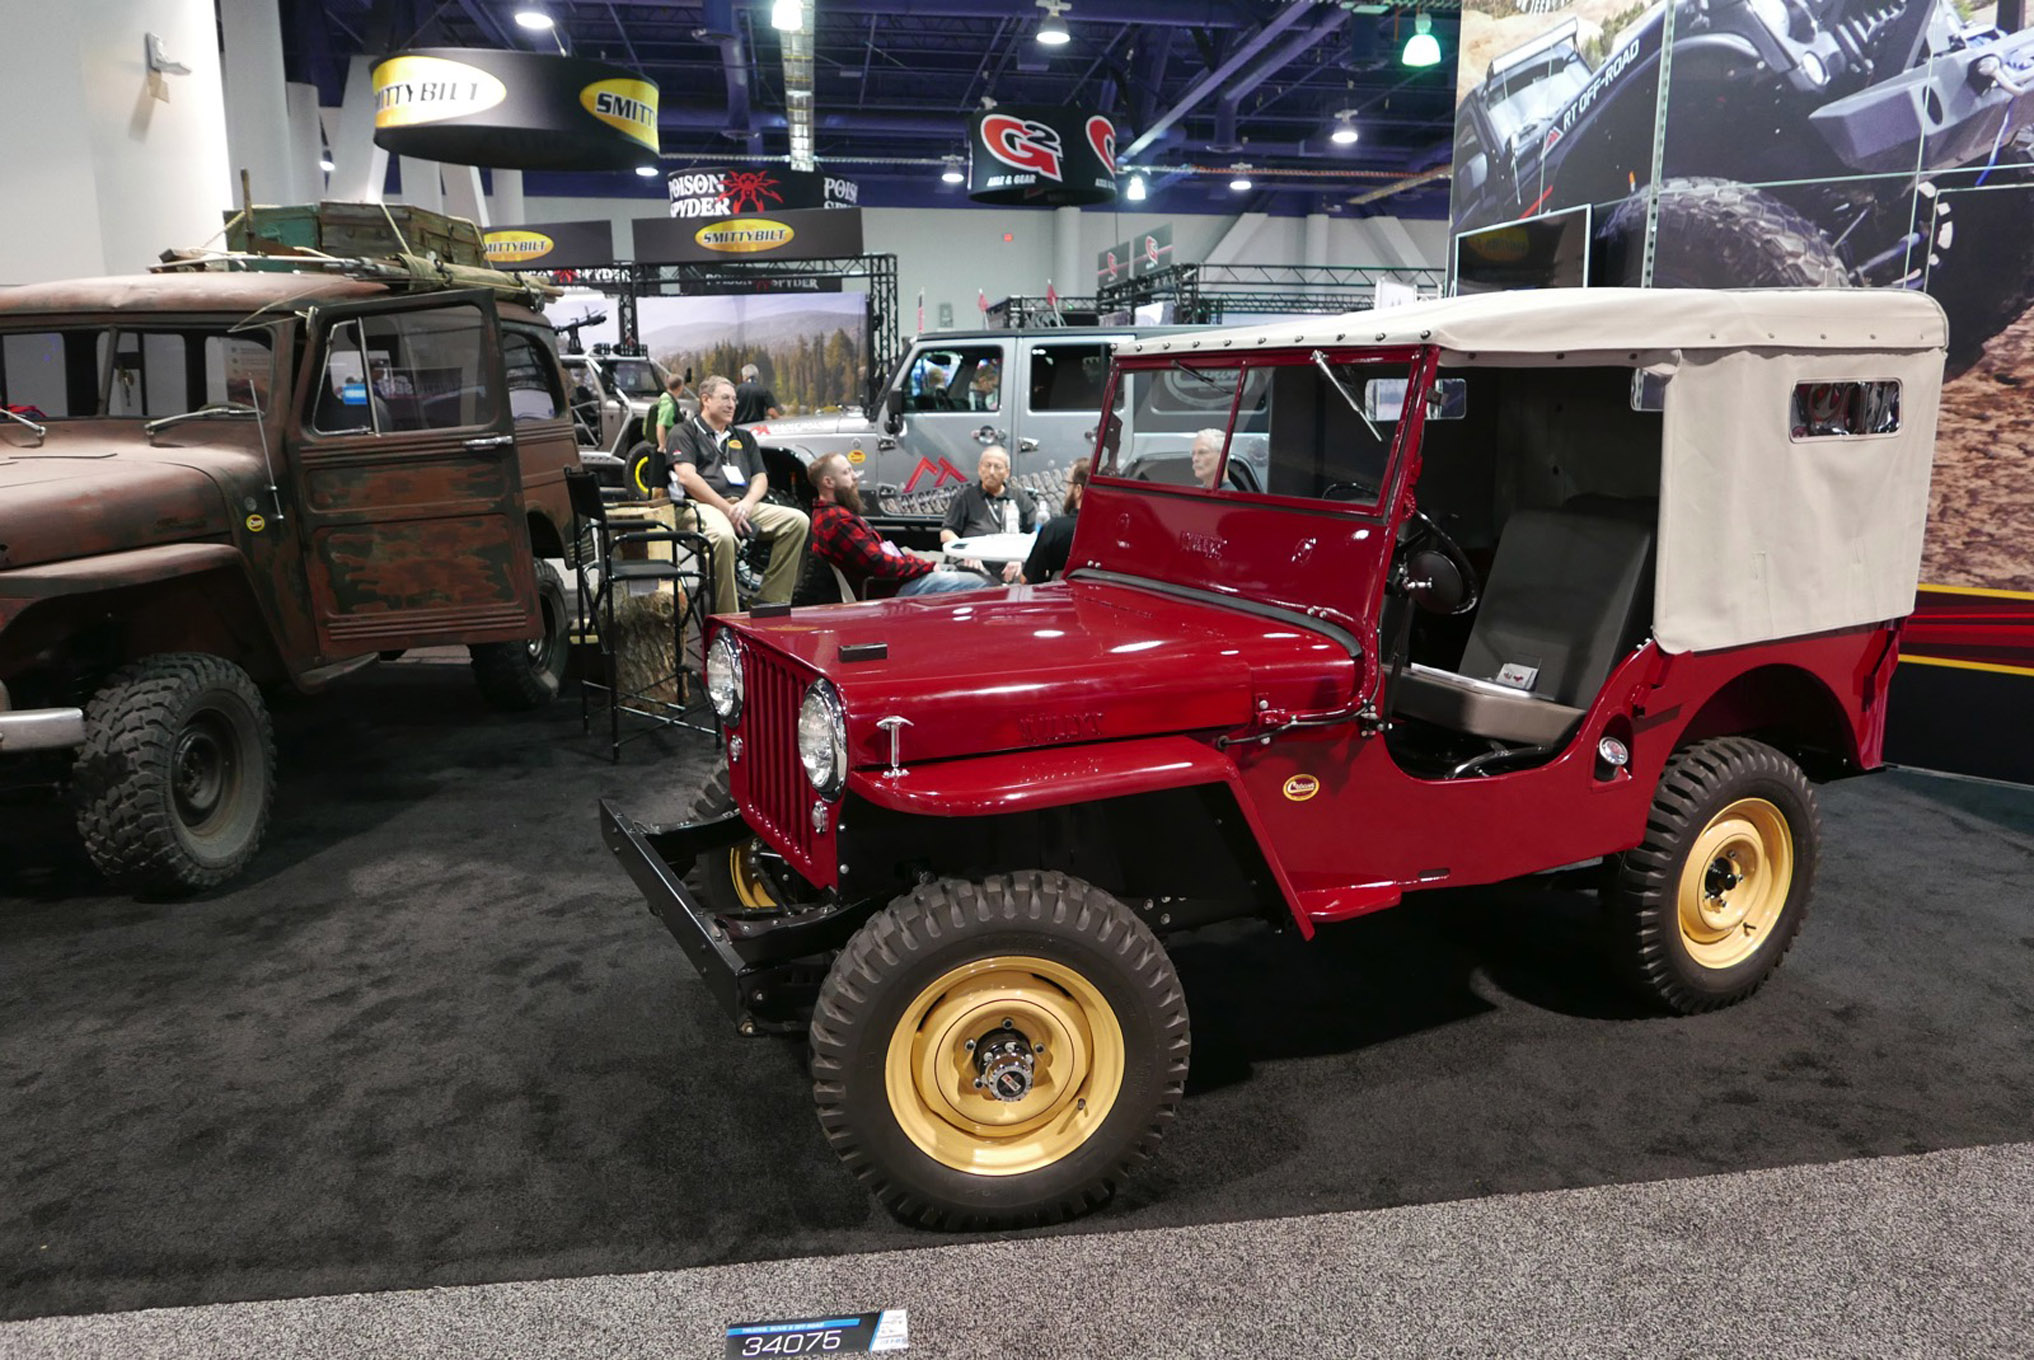 153 sema 2017 day 1 south upper hall gallery photos